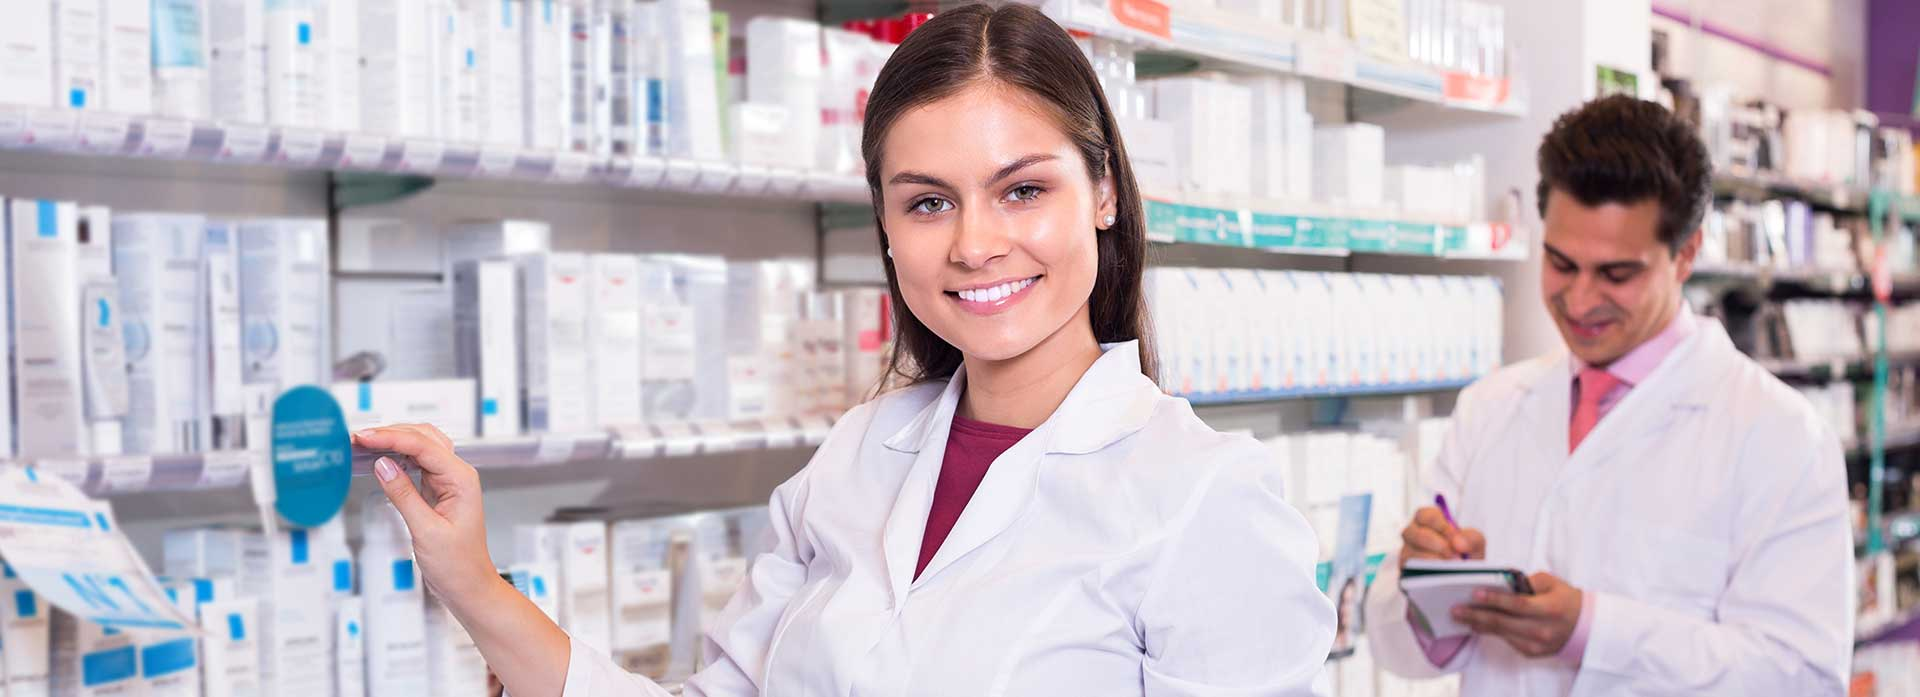 pharmacy technicians coursework Pharmacy technician careers 851 likes pharmacy technician review's goal is to be the online resource for people aspiring for careers as pharmacy.